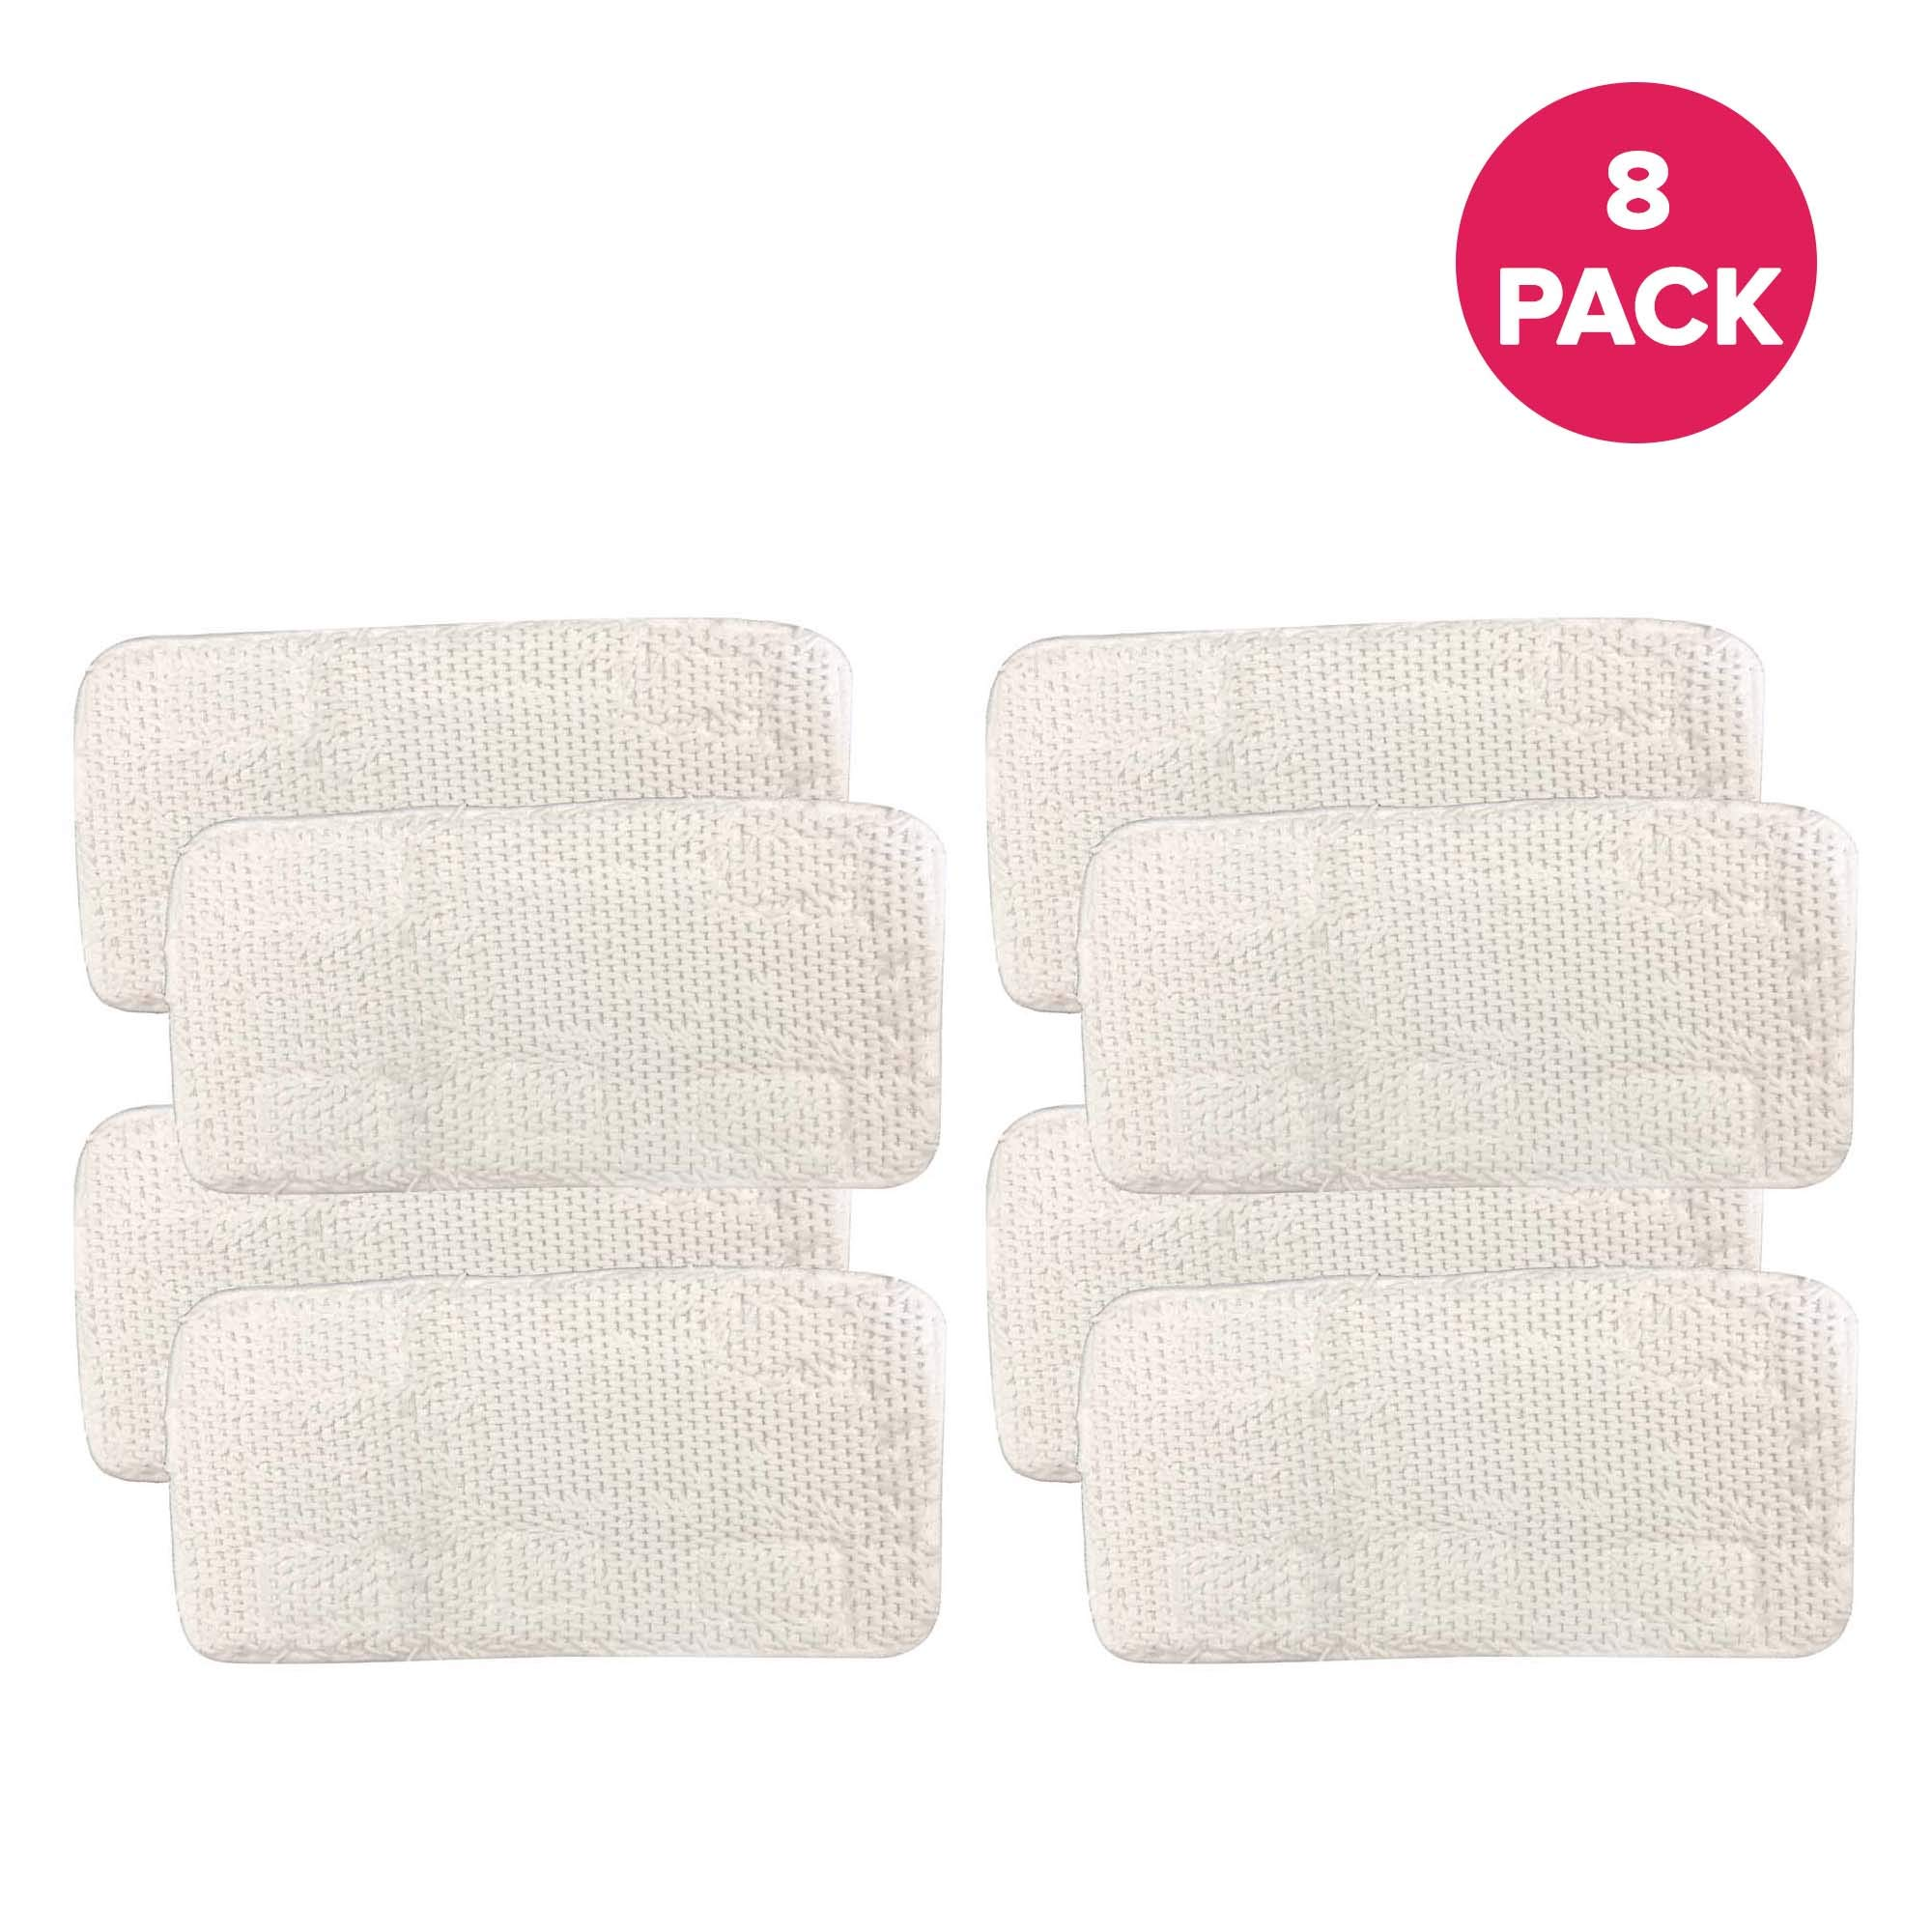 Think Crucial Replacements for Sienna Luna Steamer Head Mop Pads Fit SSM-3006-CP, Washable & Reusable (8 Pack)